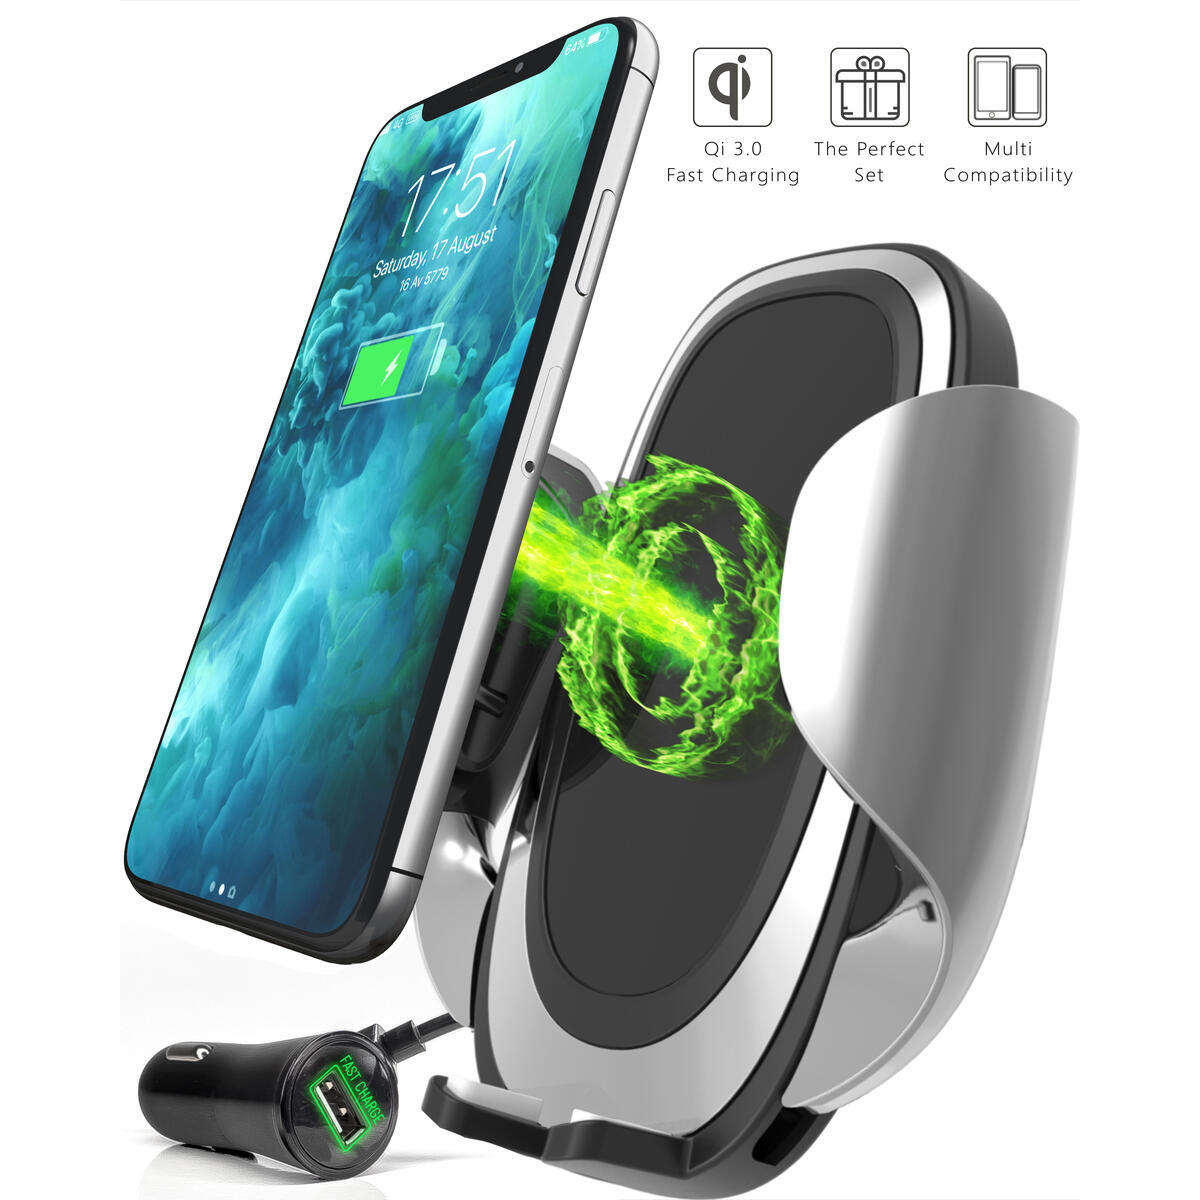 3-in-1 Wireless Car Charger Mount for Air Vent, Dashboard & Windshield